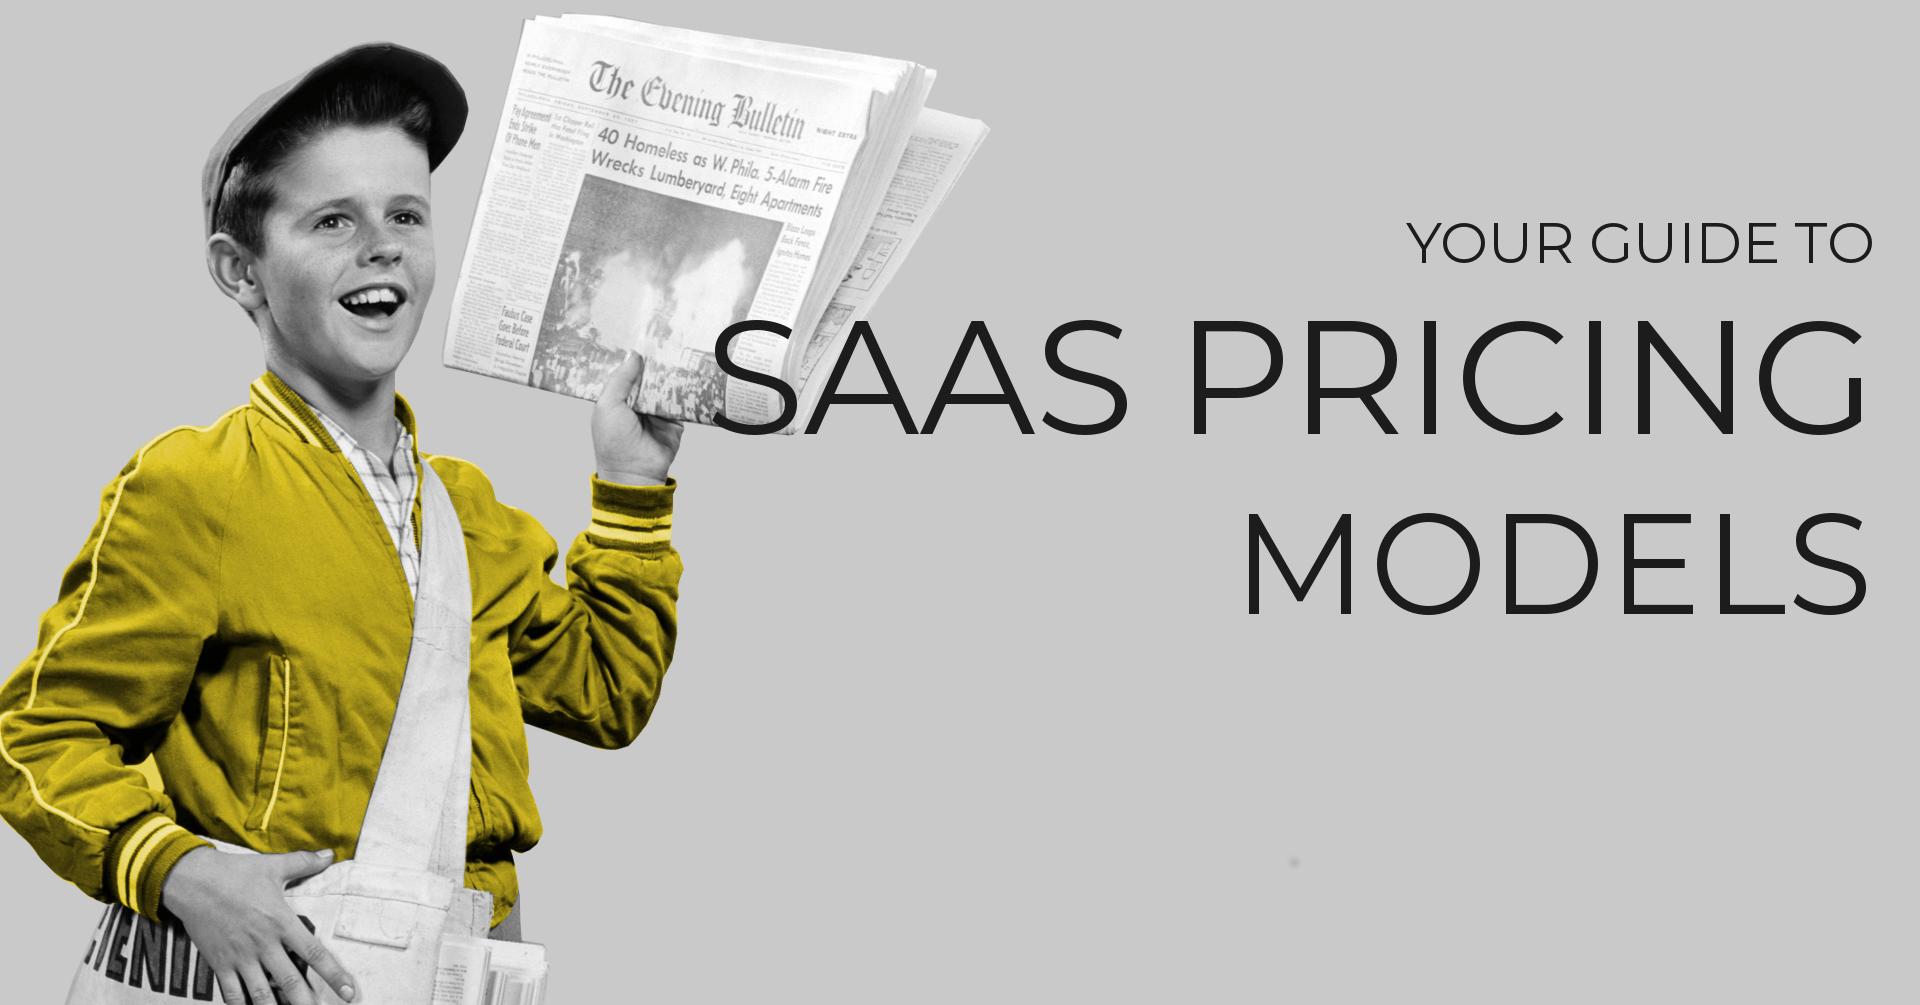 Your guide to SaaS pricing models